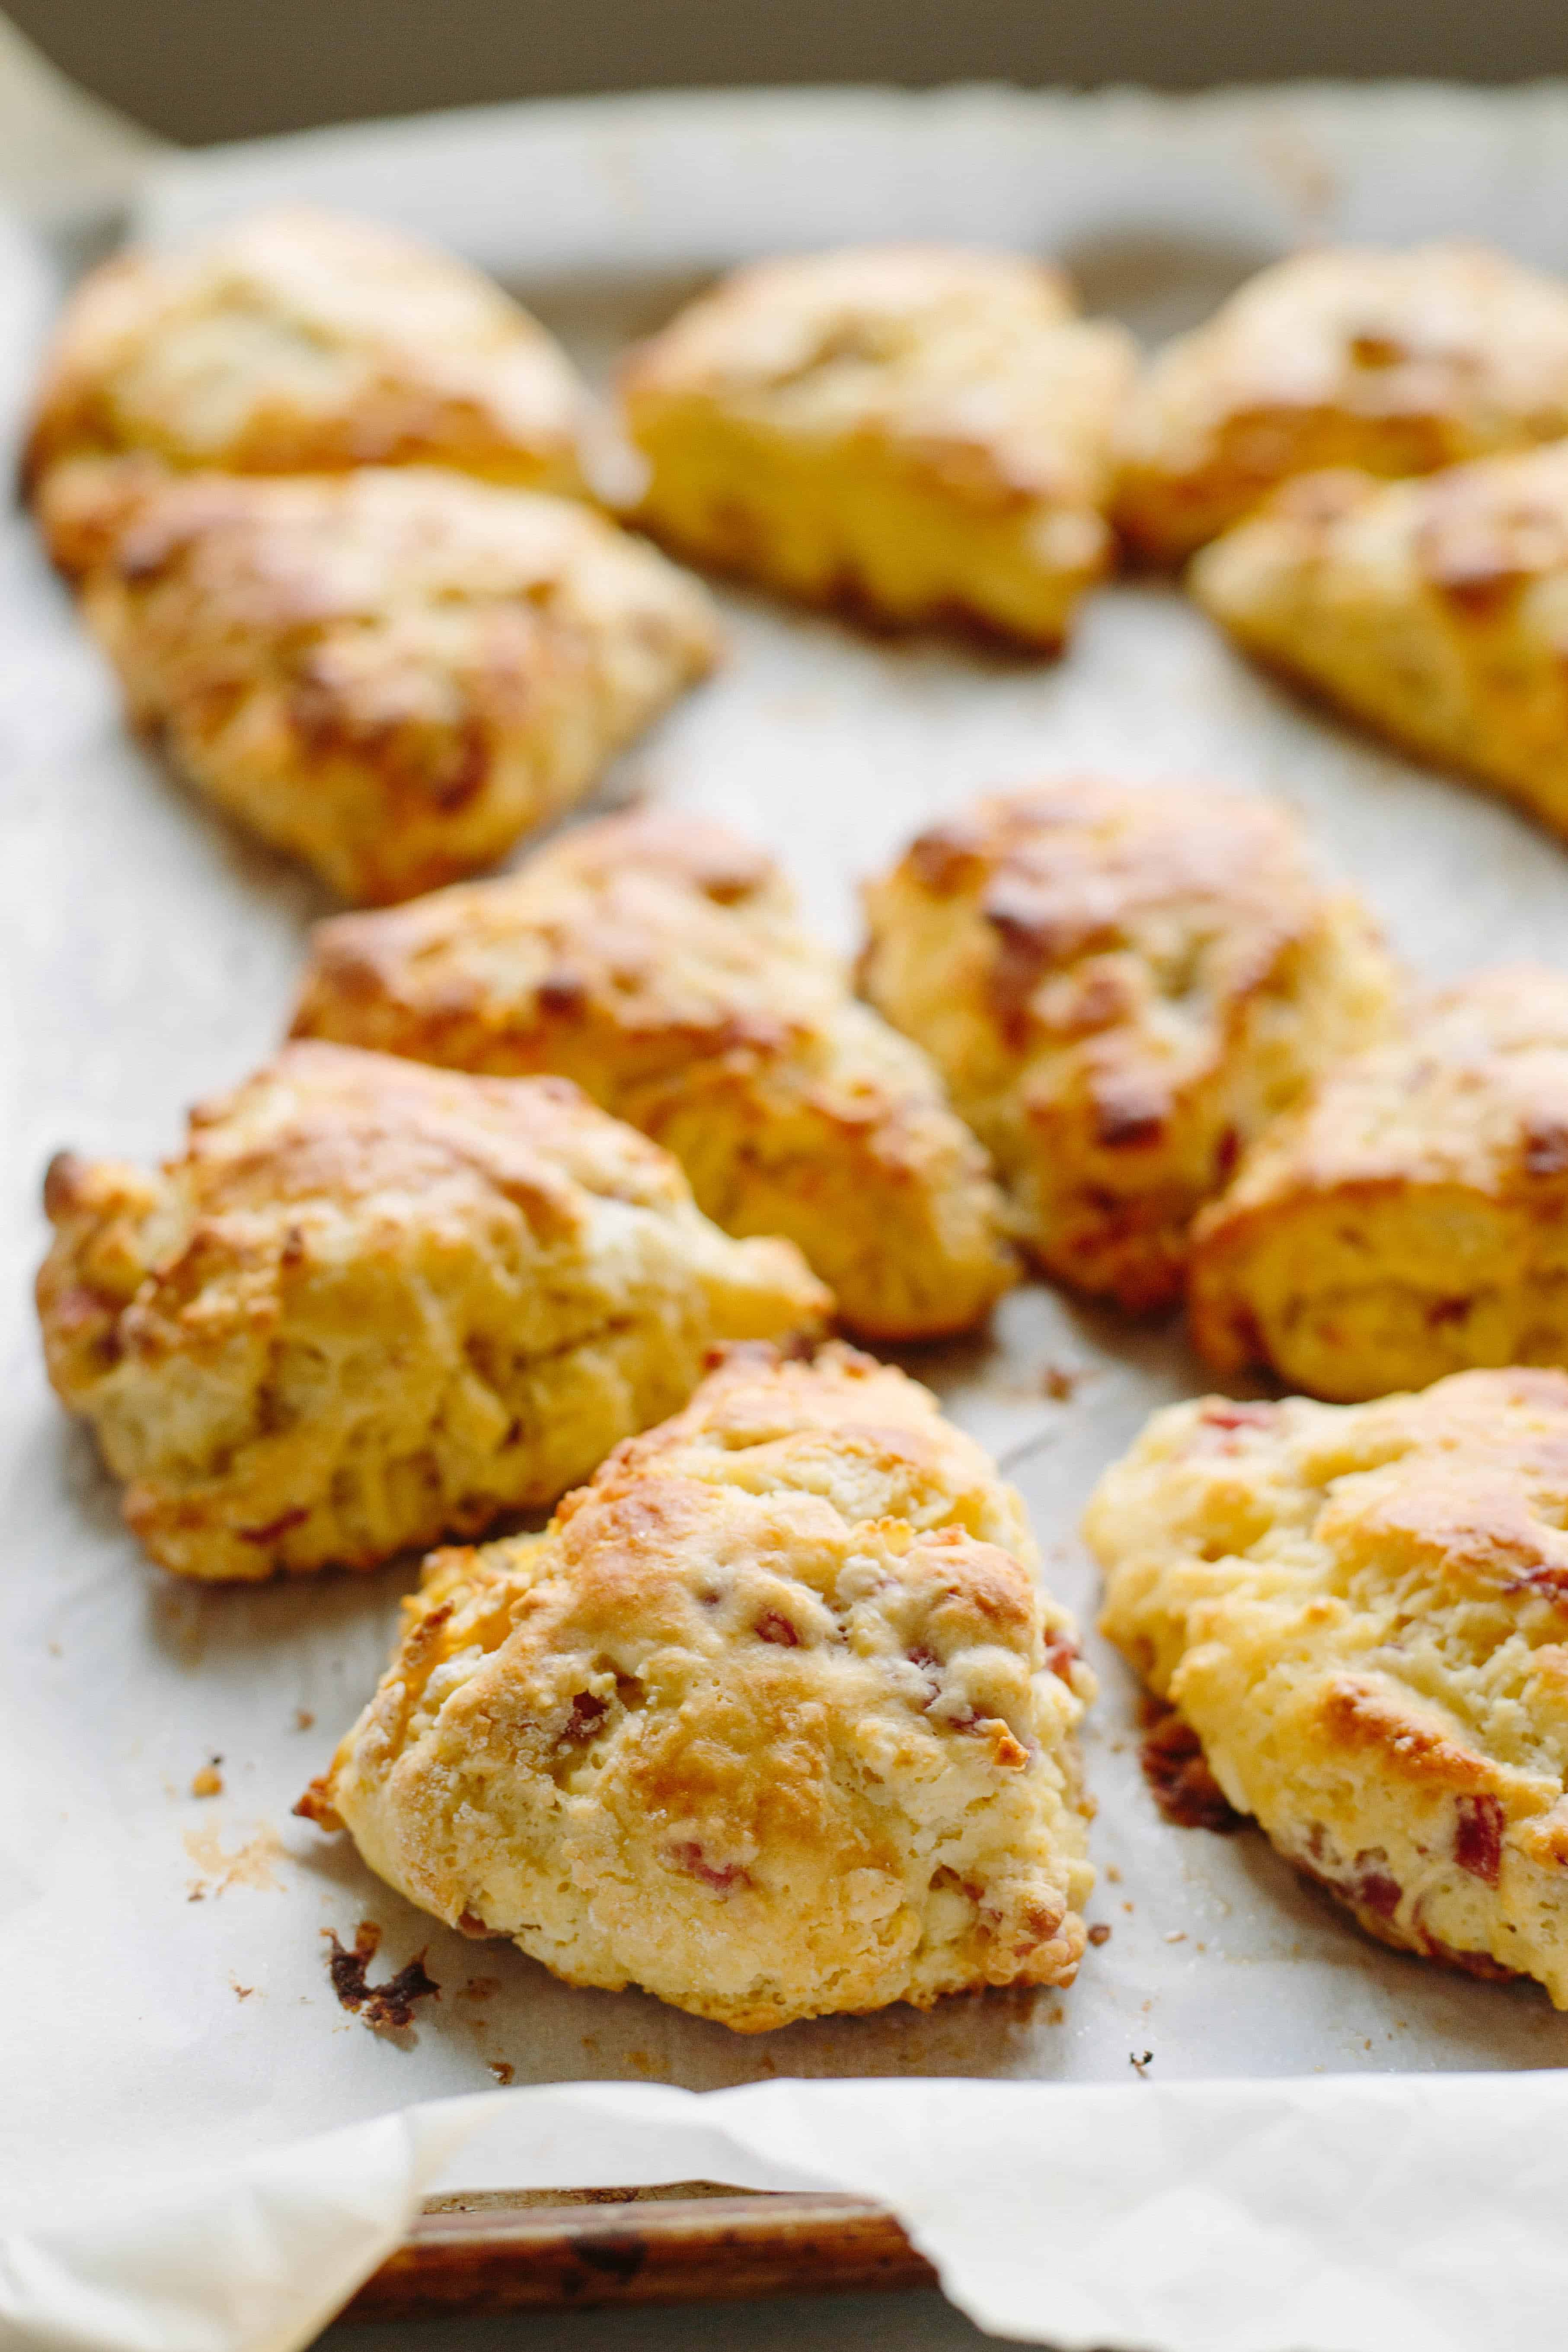 Freshly baked prosciutto goat cheese scones on a baking sheet.